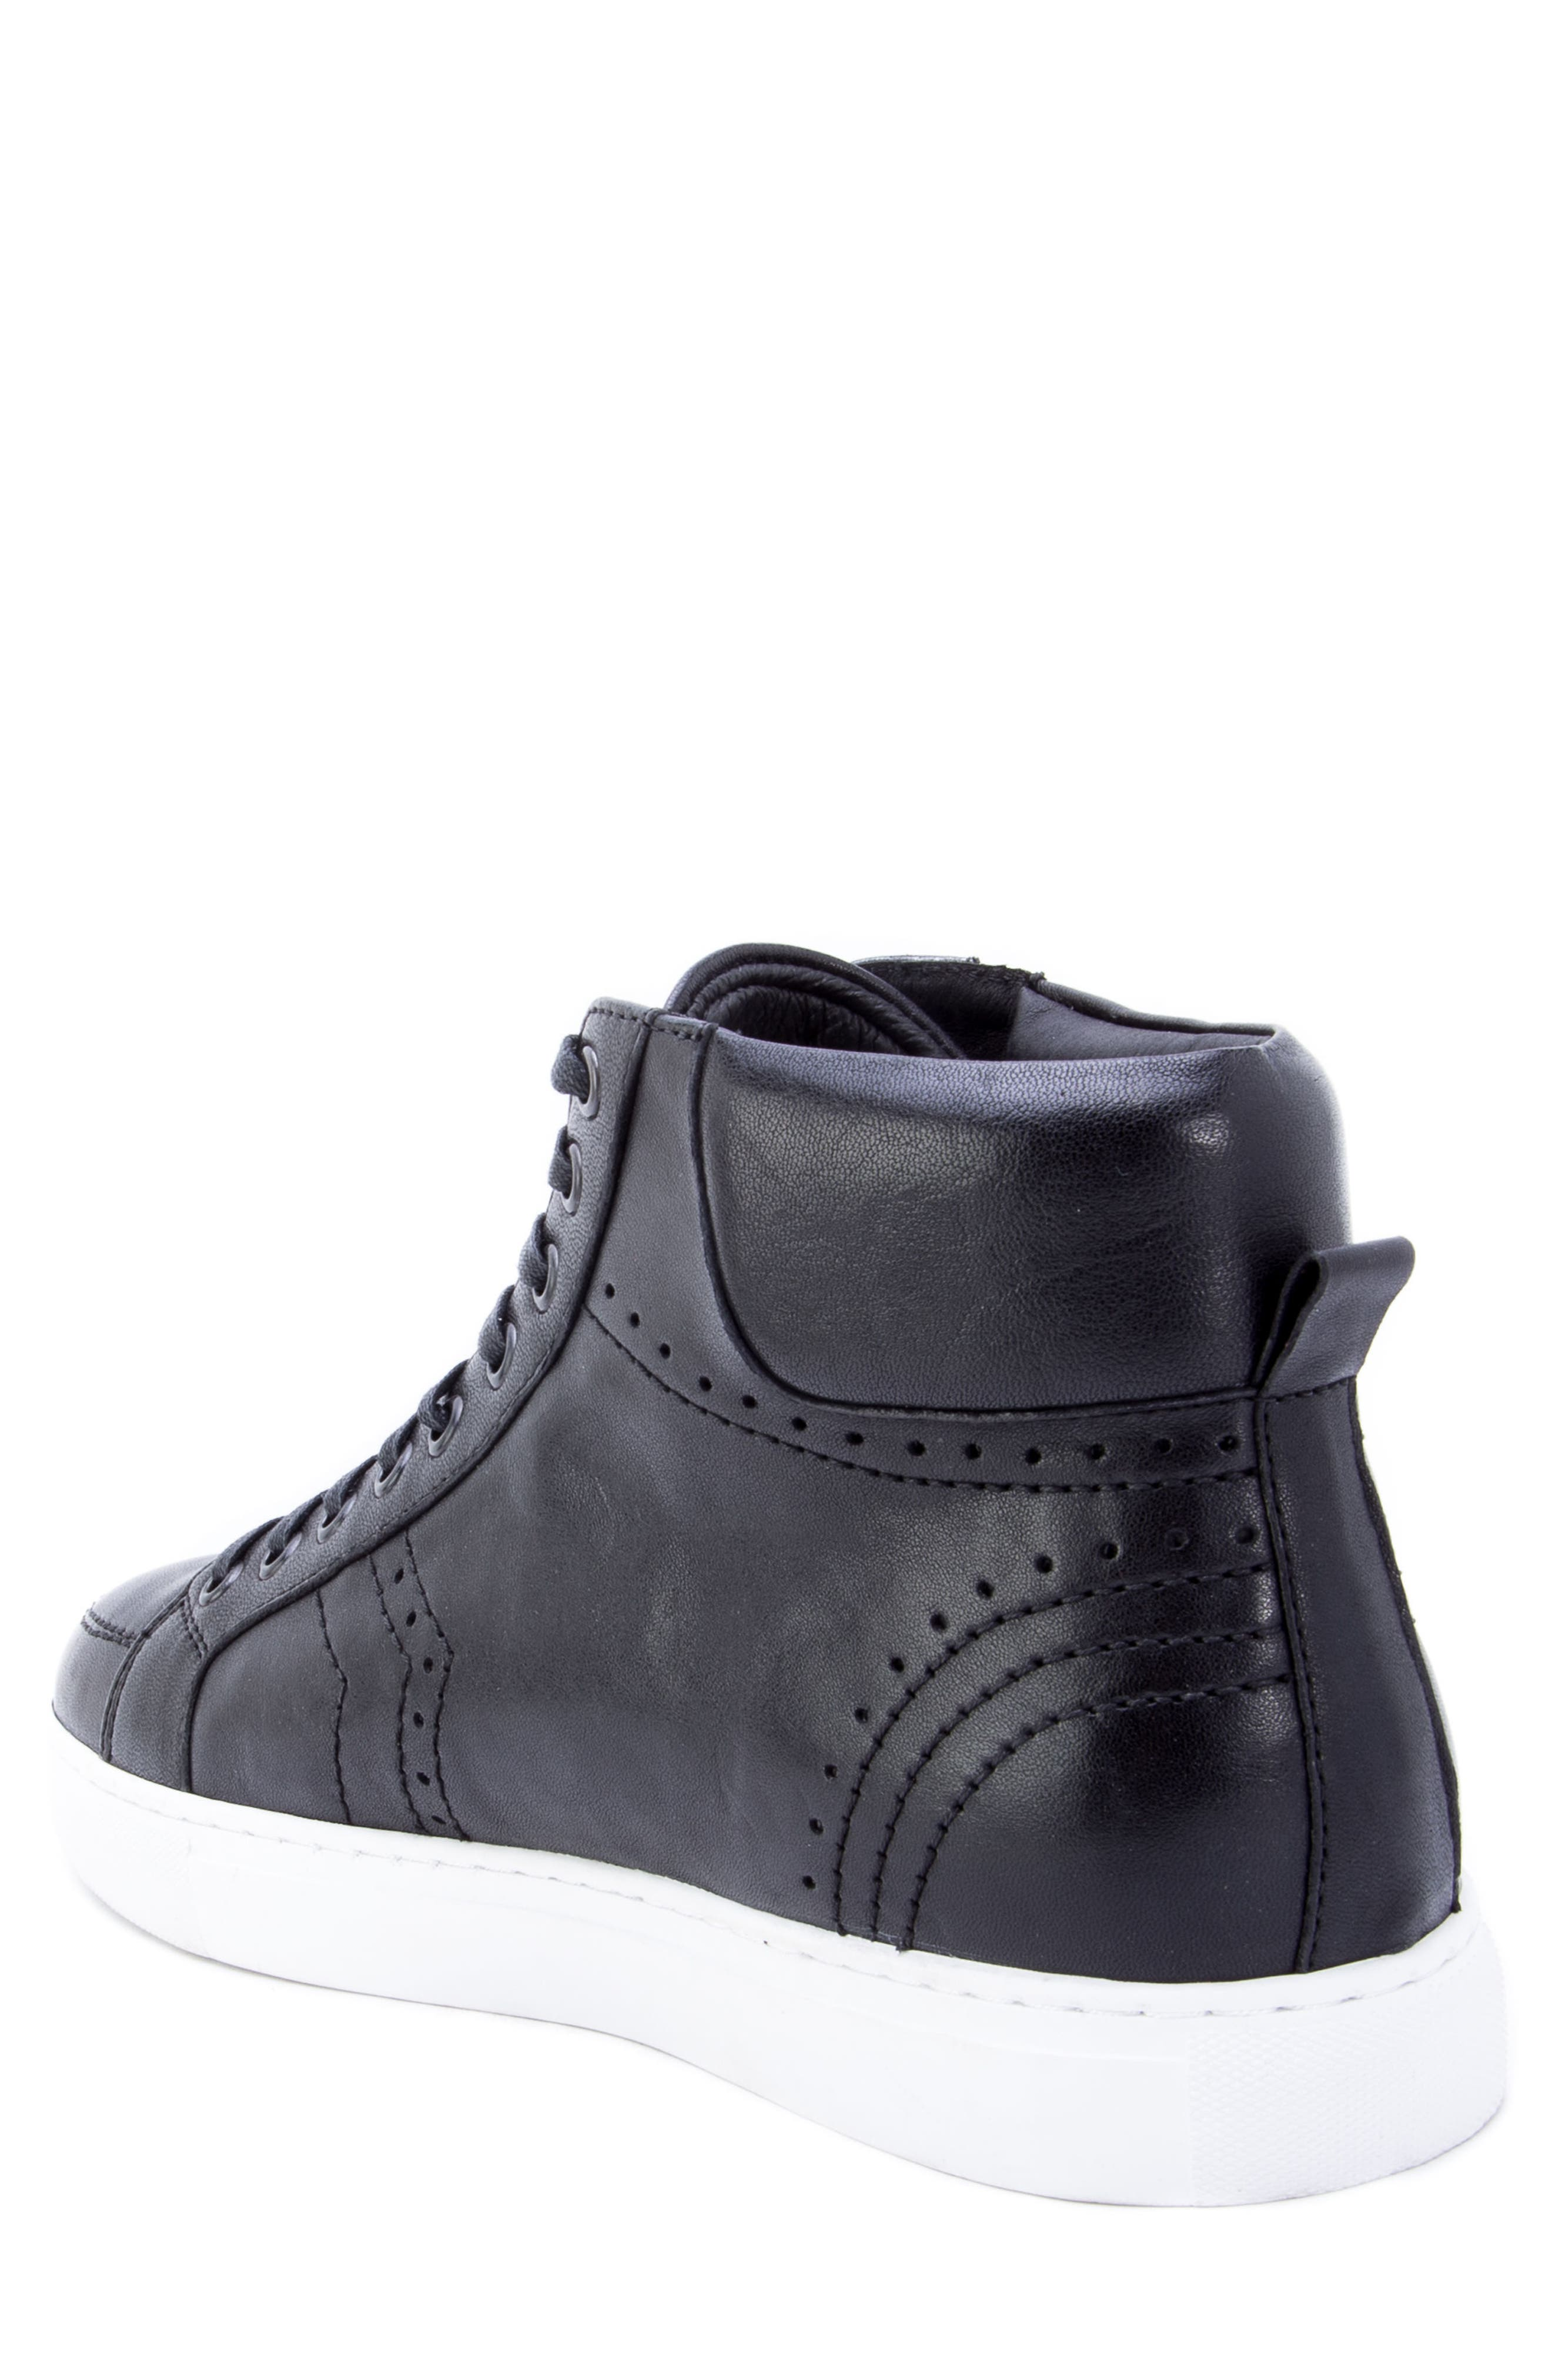 Uglow Perforated High Top Sneaker,                             Alternate thumbnail 2, color,                             BLACK LEATHER